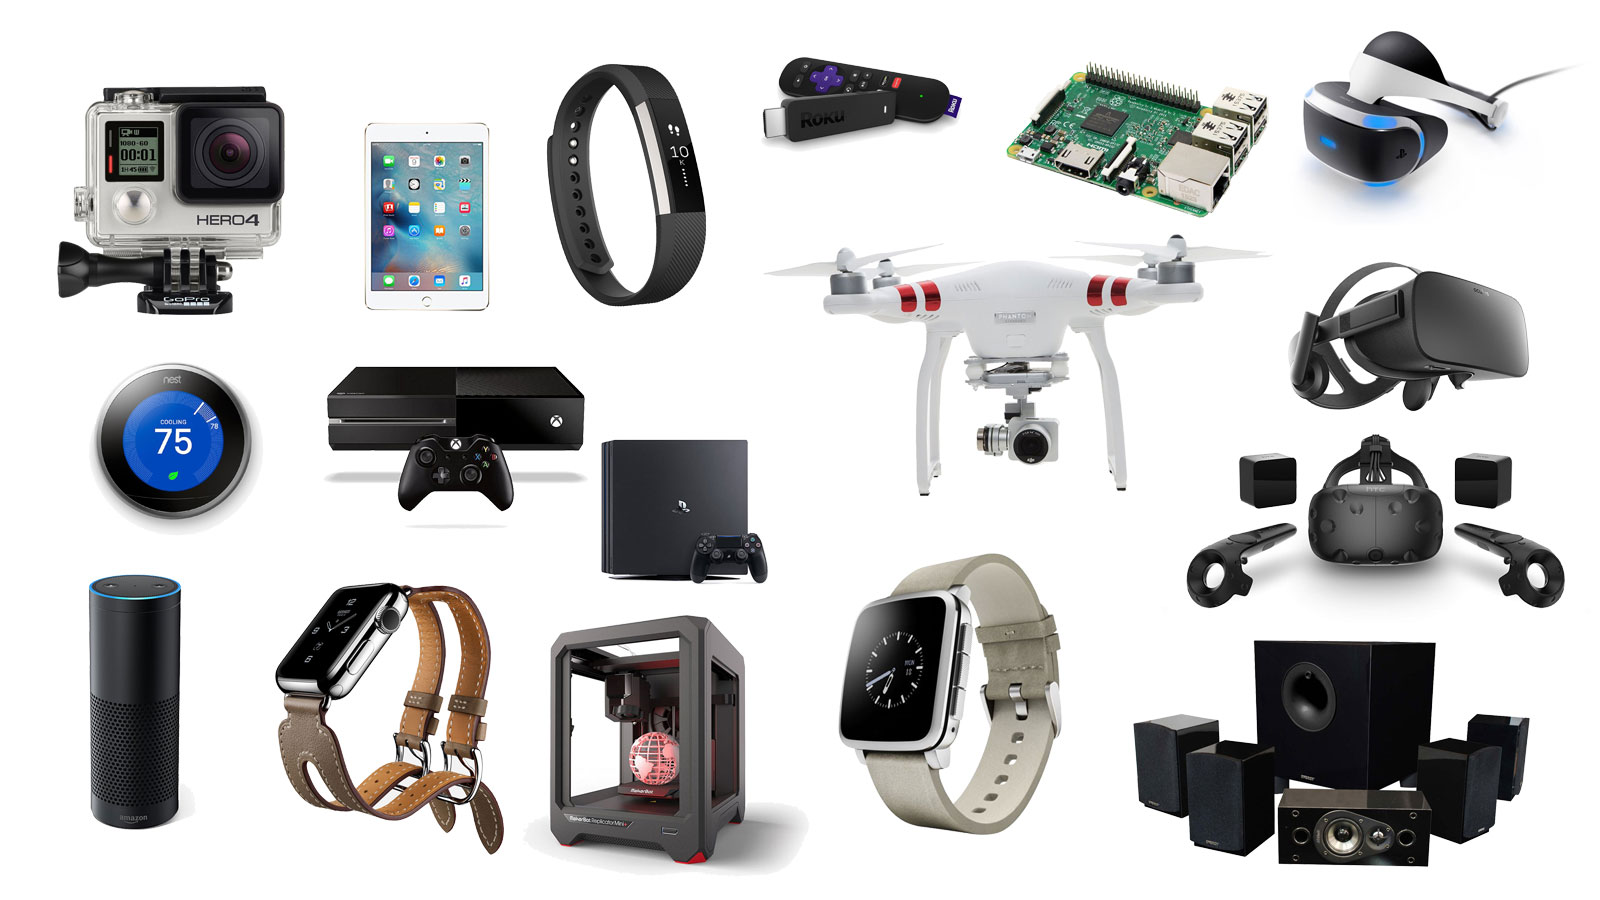 Gifts For Men | The Best Gifts For Techies